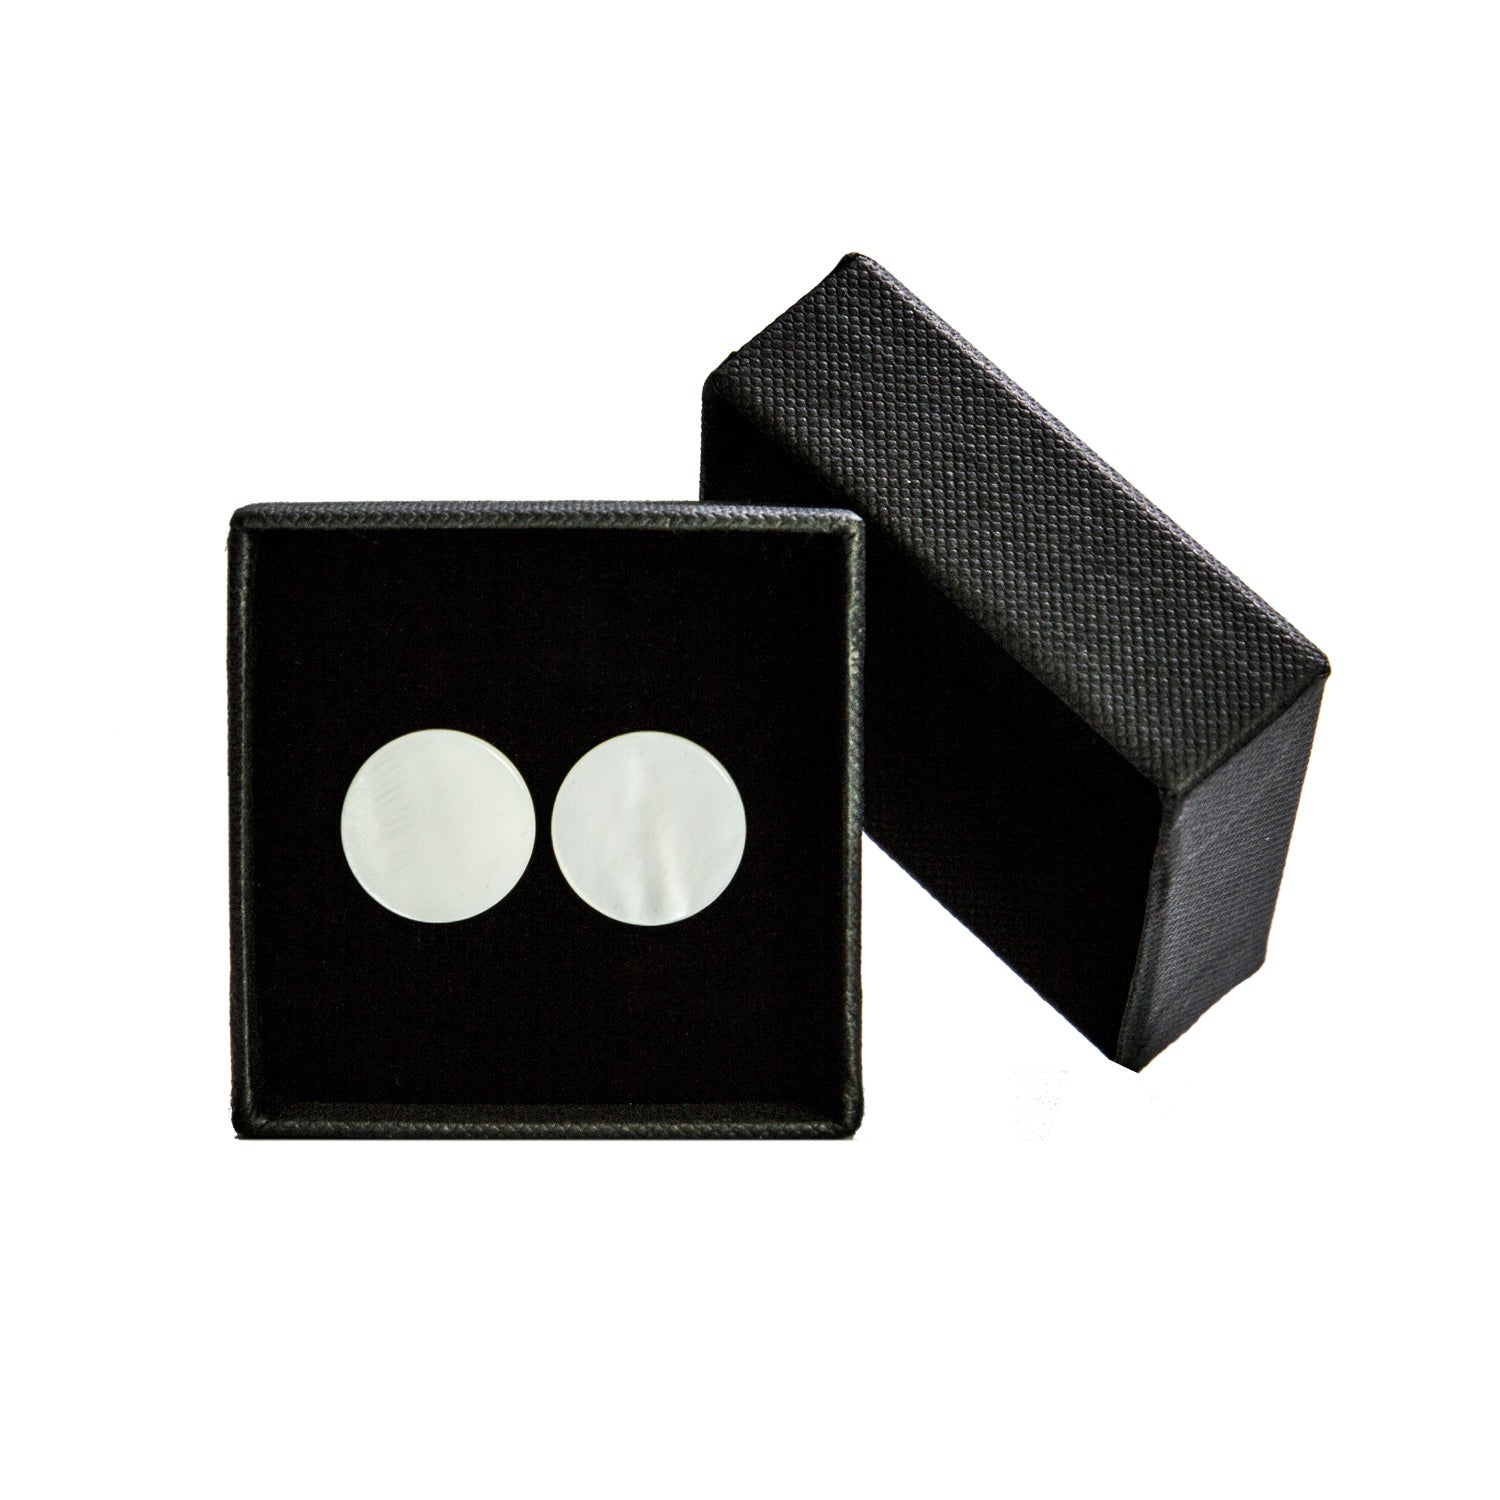 DARIO'S Couture mother of pearl Cufflinks with personalization